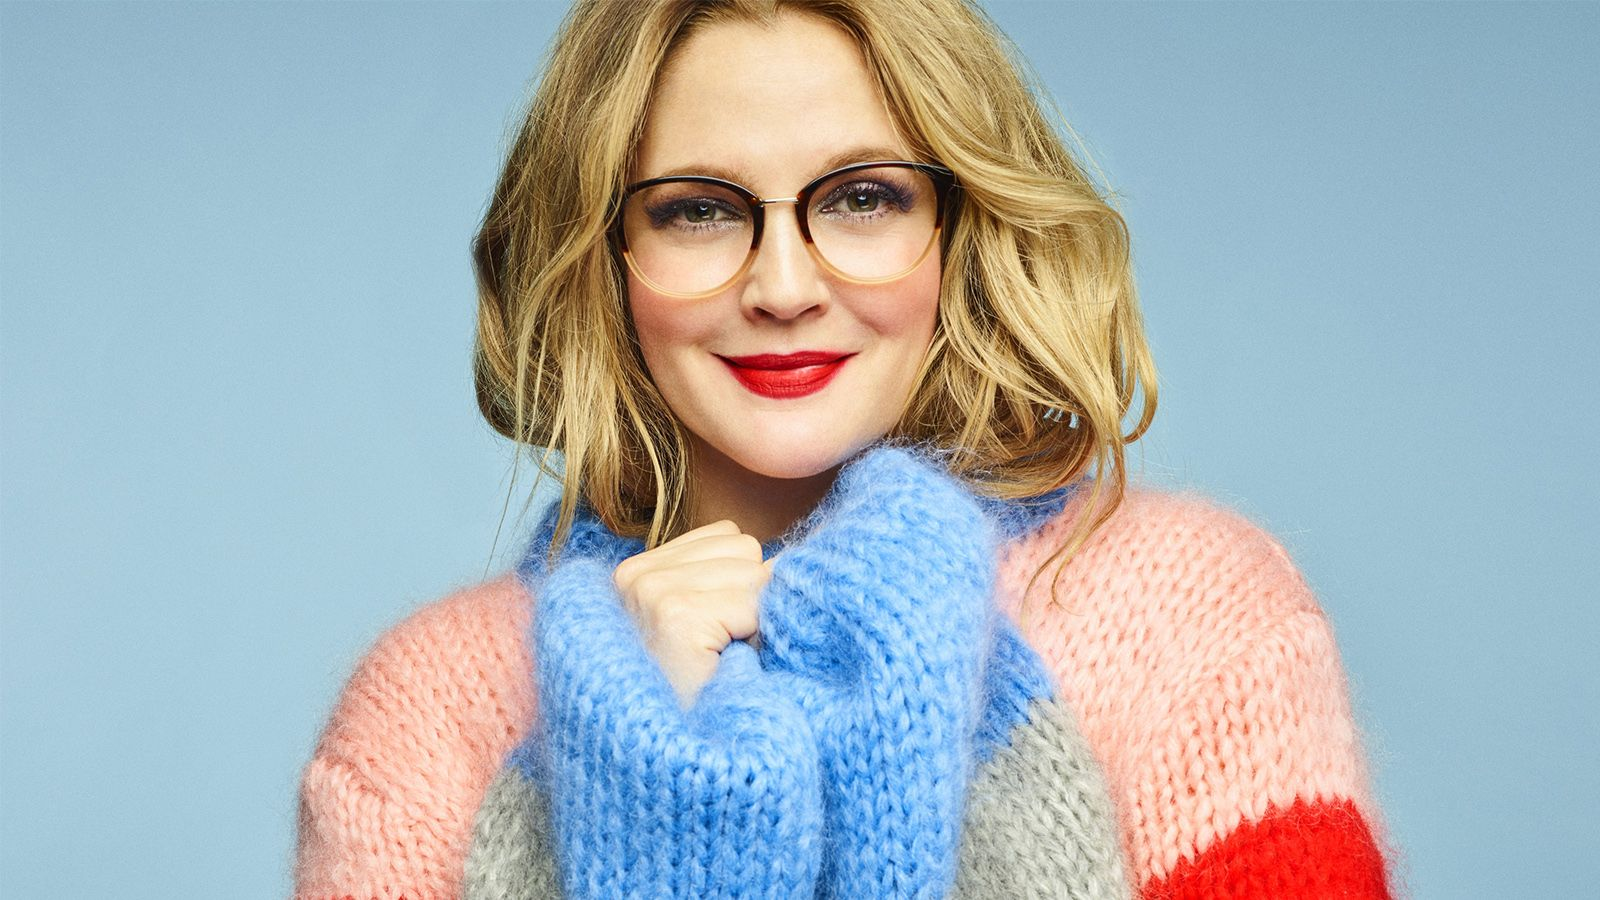 Drew Barrymore launches new FLOWER eyewear collection with Asda